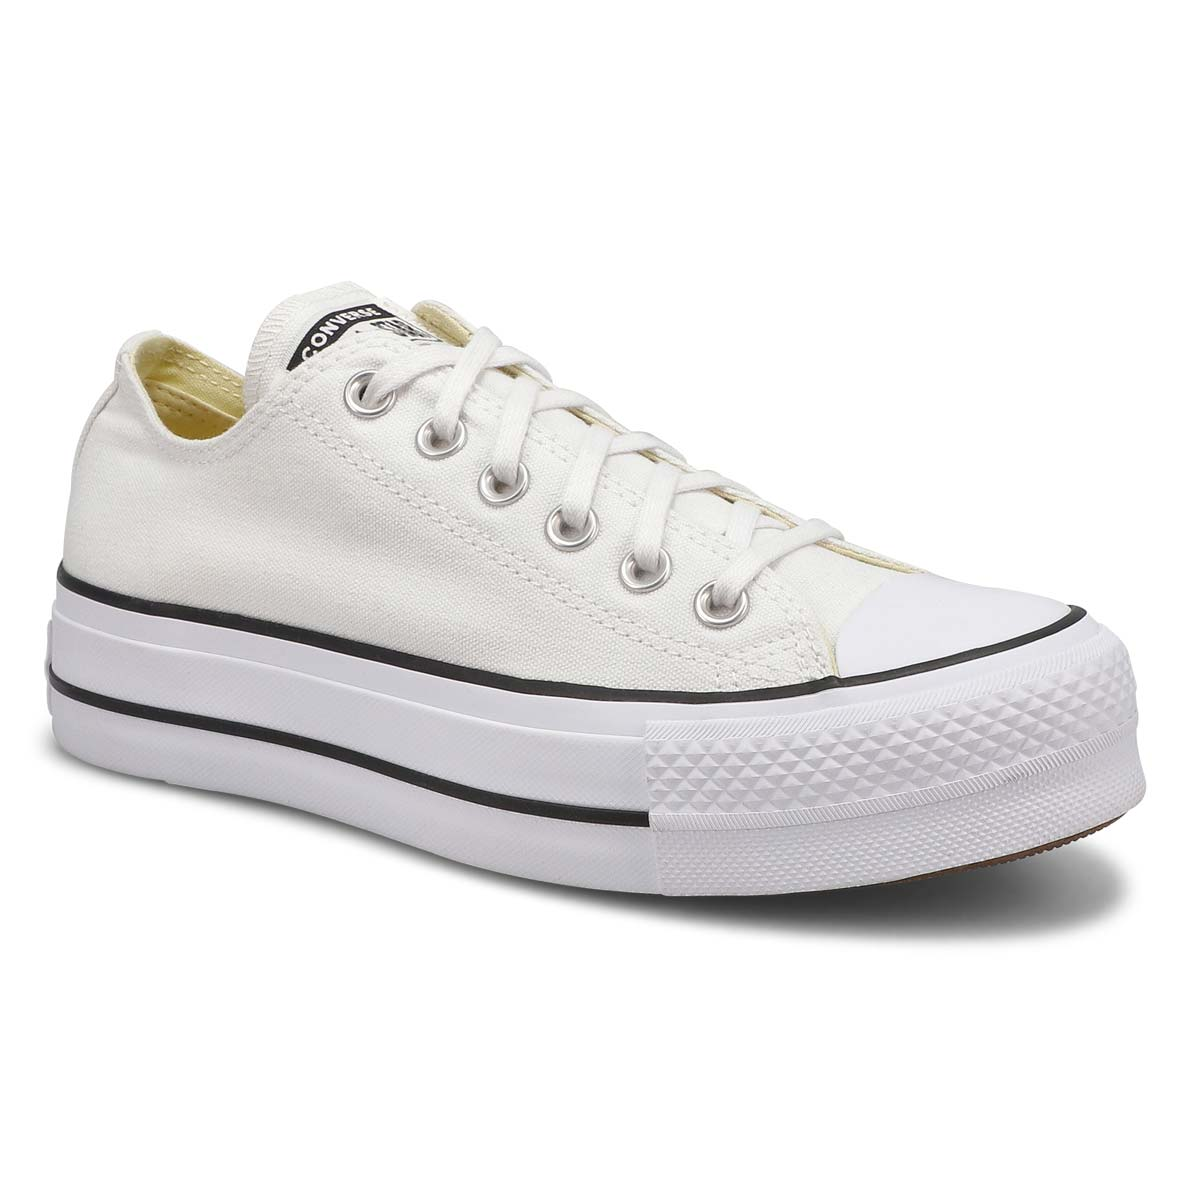 42928b0c50d40 Converse Women s CT ALL STAR LIFT white platf